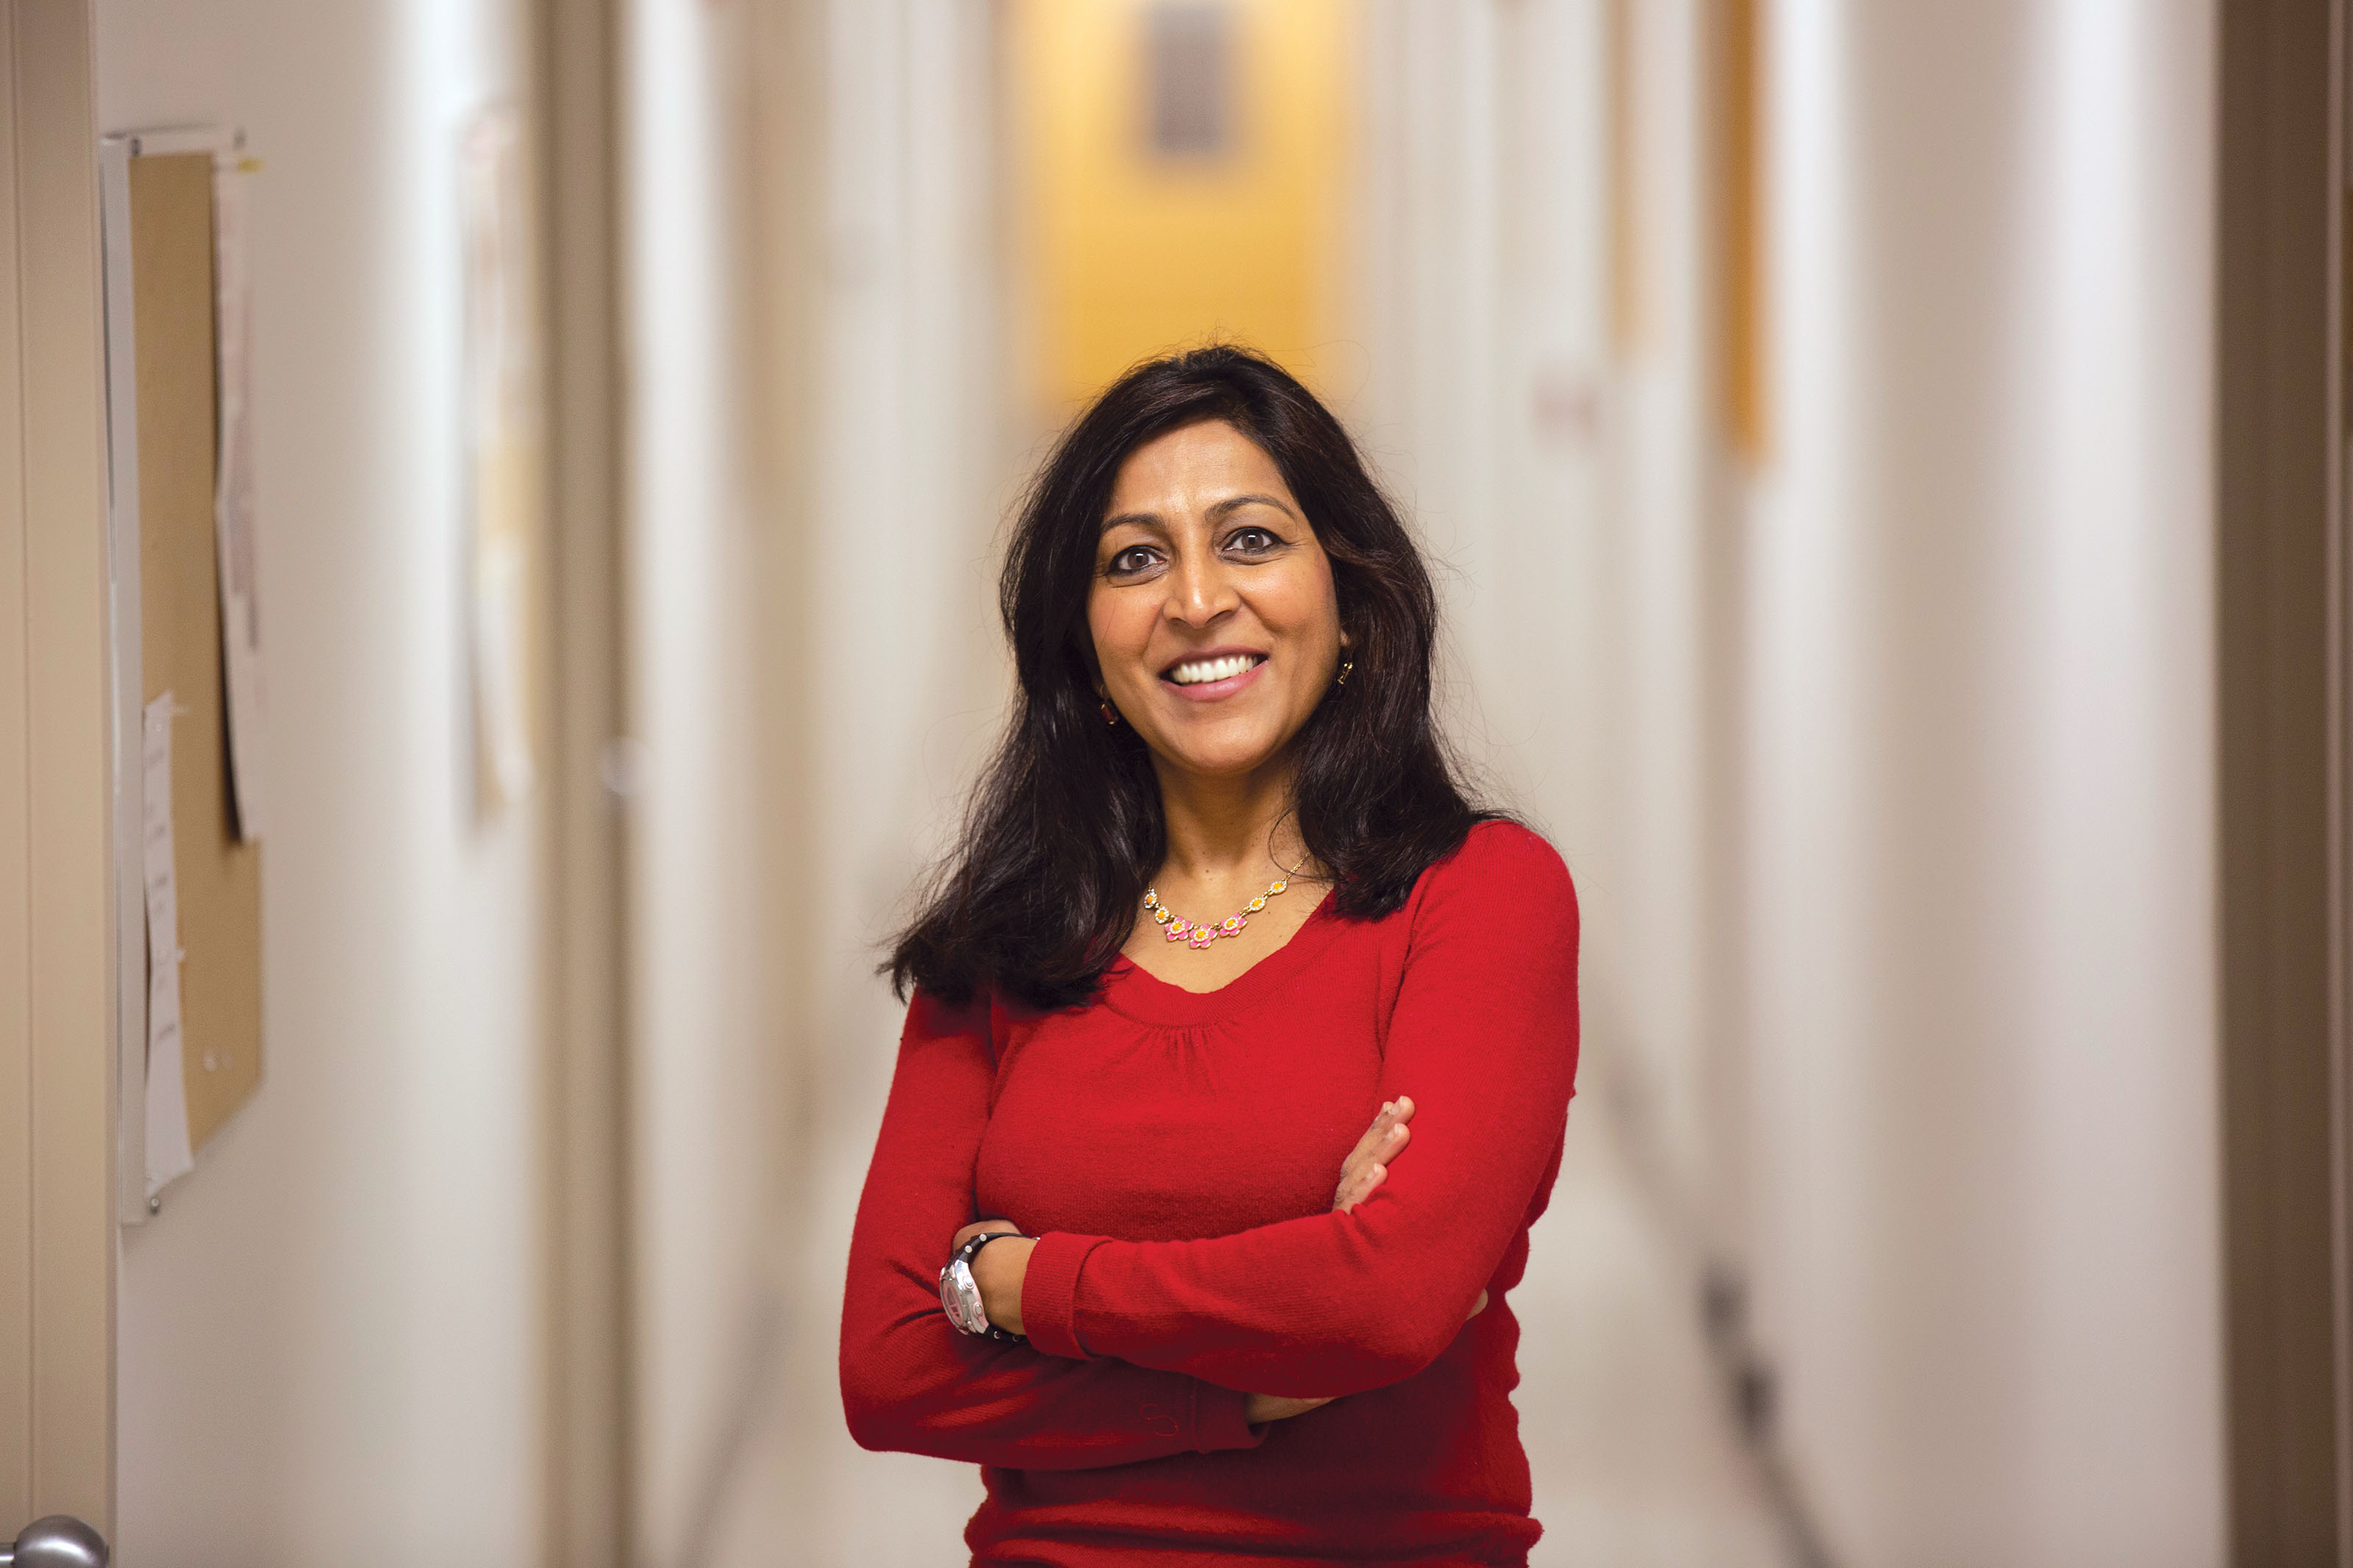 Lalitha Sankar, an associate professor of electrical engineering has been researching game theoretic models to help retailers and service providers generate accurate purchase recommendations while guaranteeing consumer privacy.